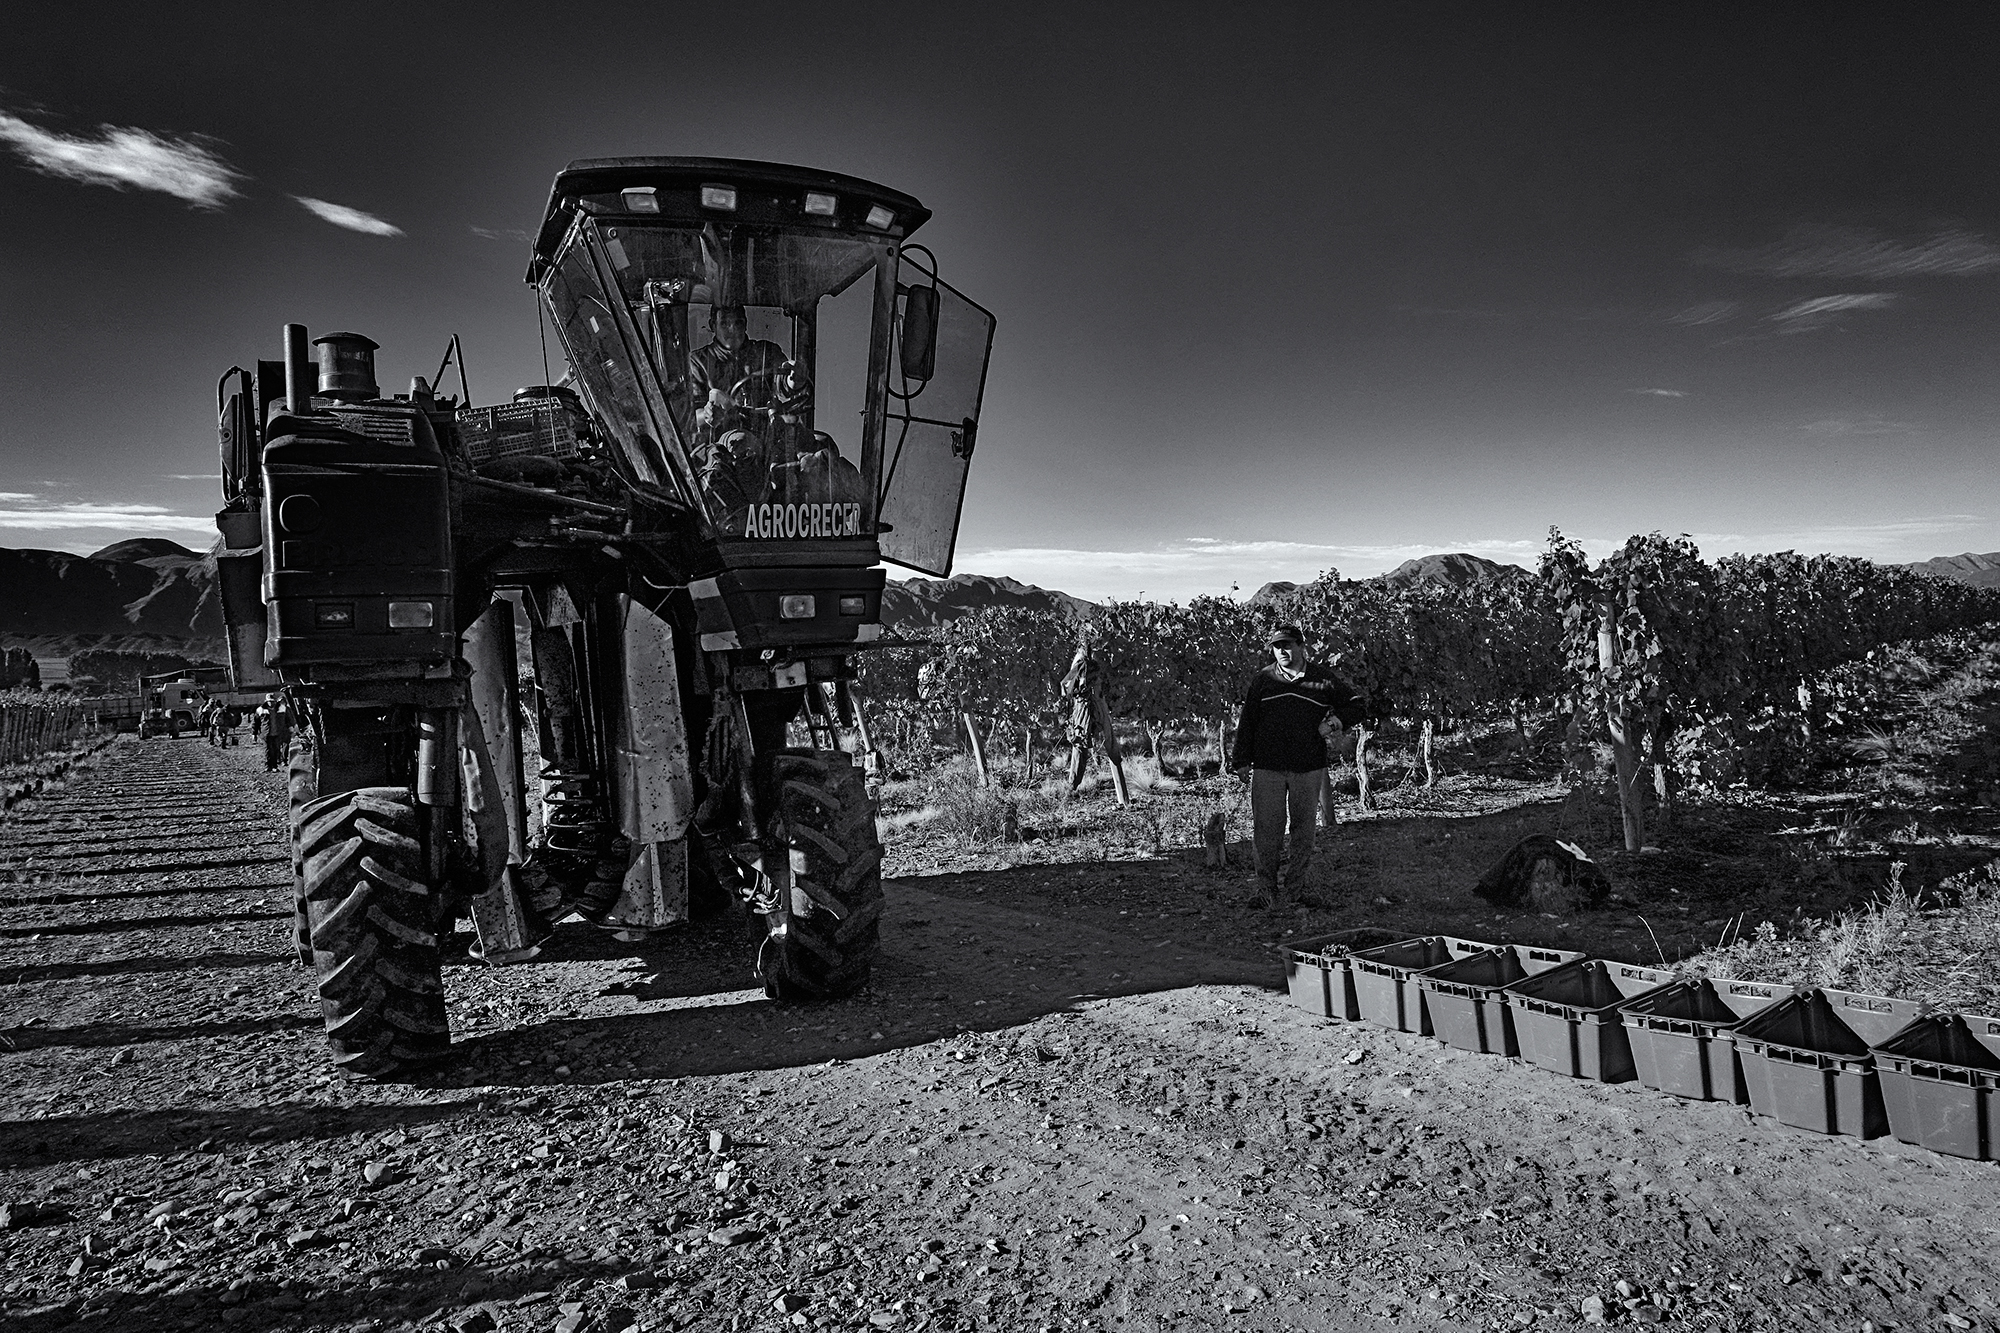 Grape Harvester. Valle del Pedernal, San Juan, Argentina, 2016